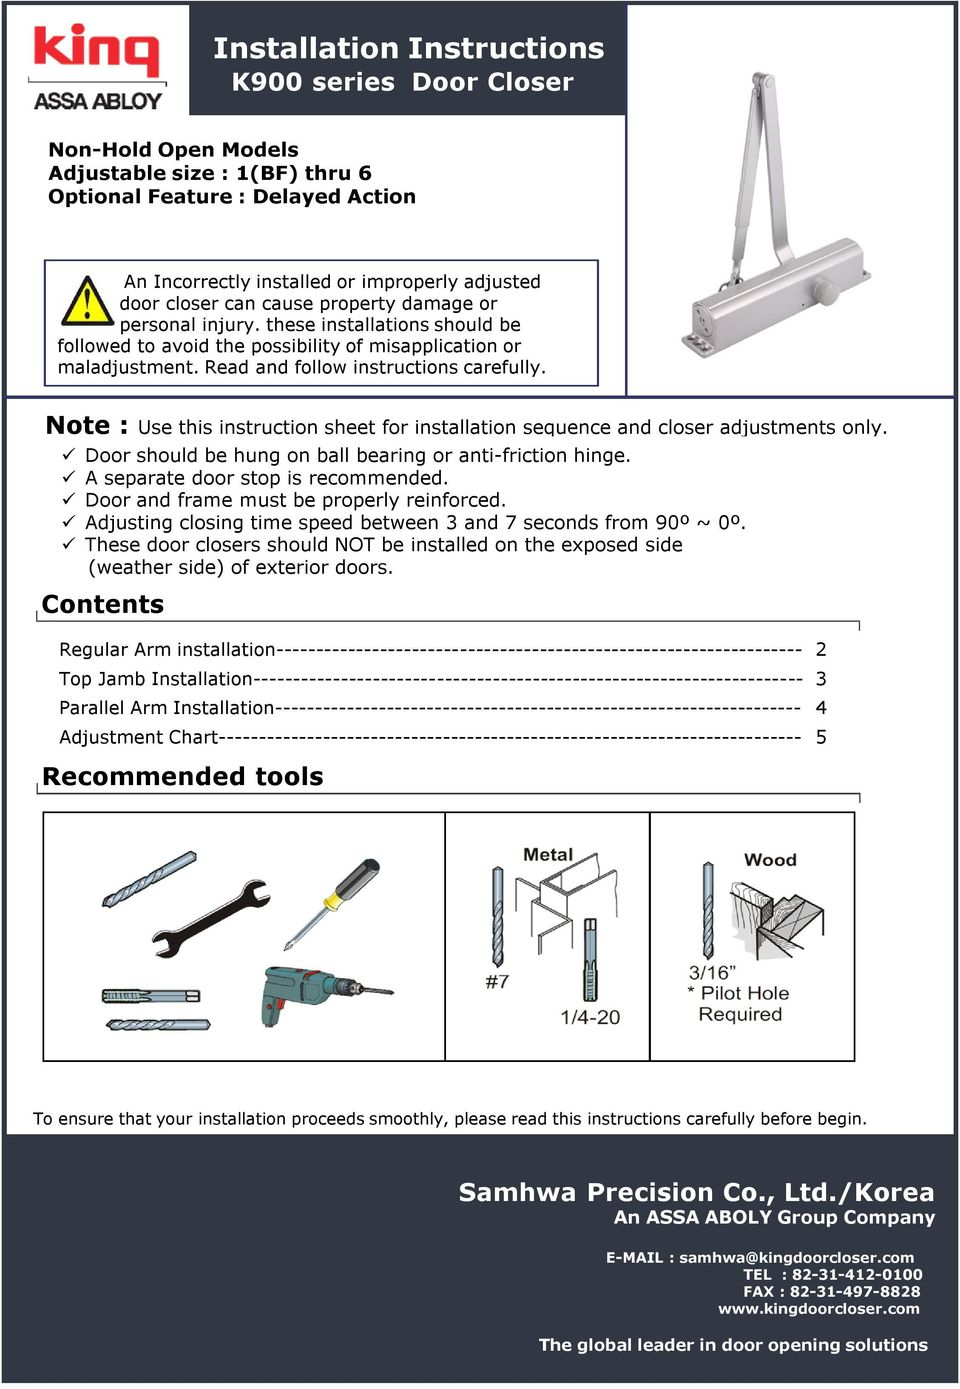 Note : Use this instruction sheet for installation sequence and closer adjustments only. Door should be hung on ball bearing or anti-friction hinge. A separate door stop is recommended.